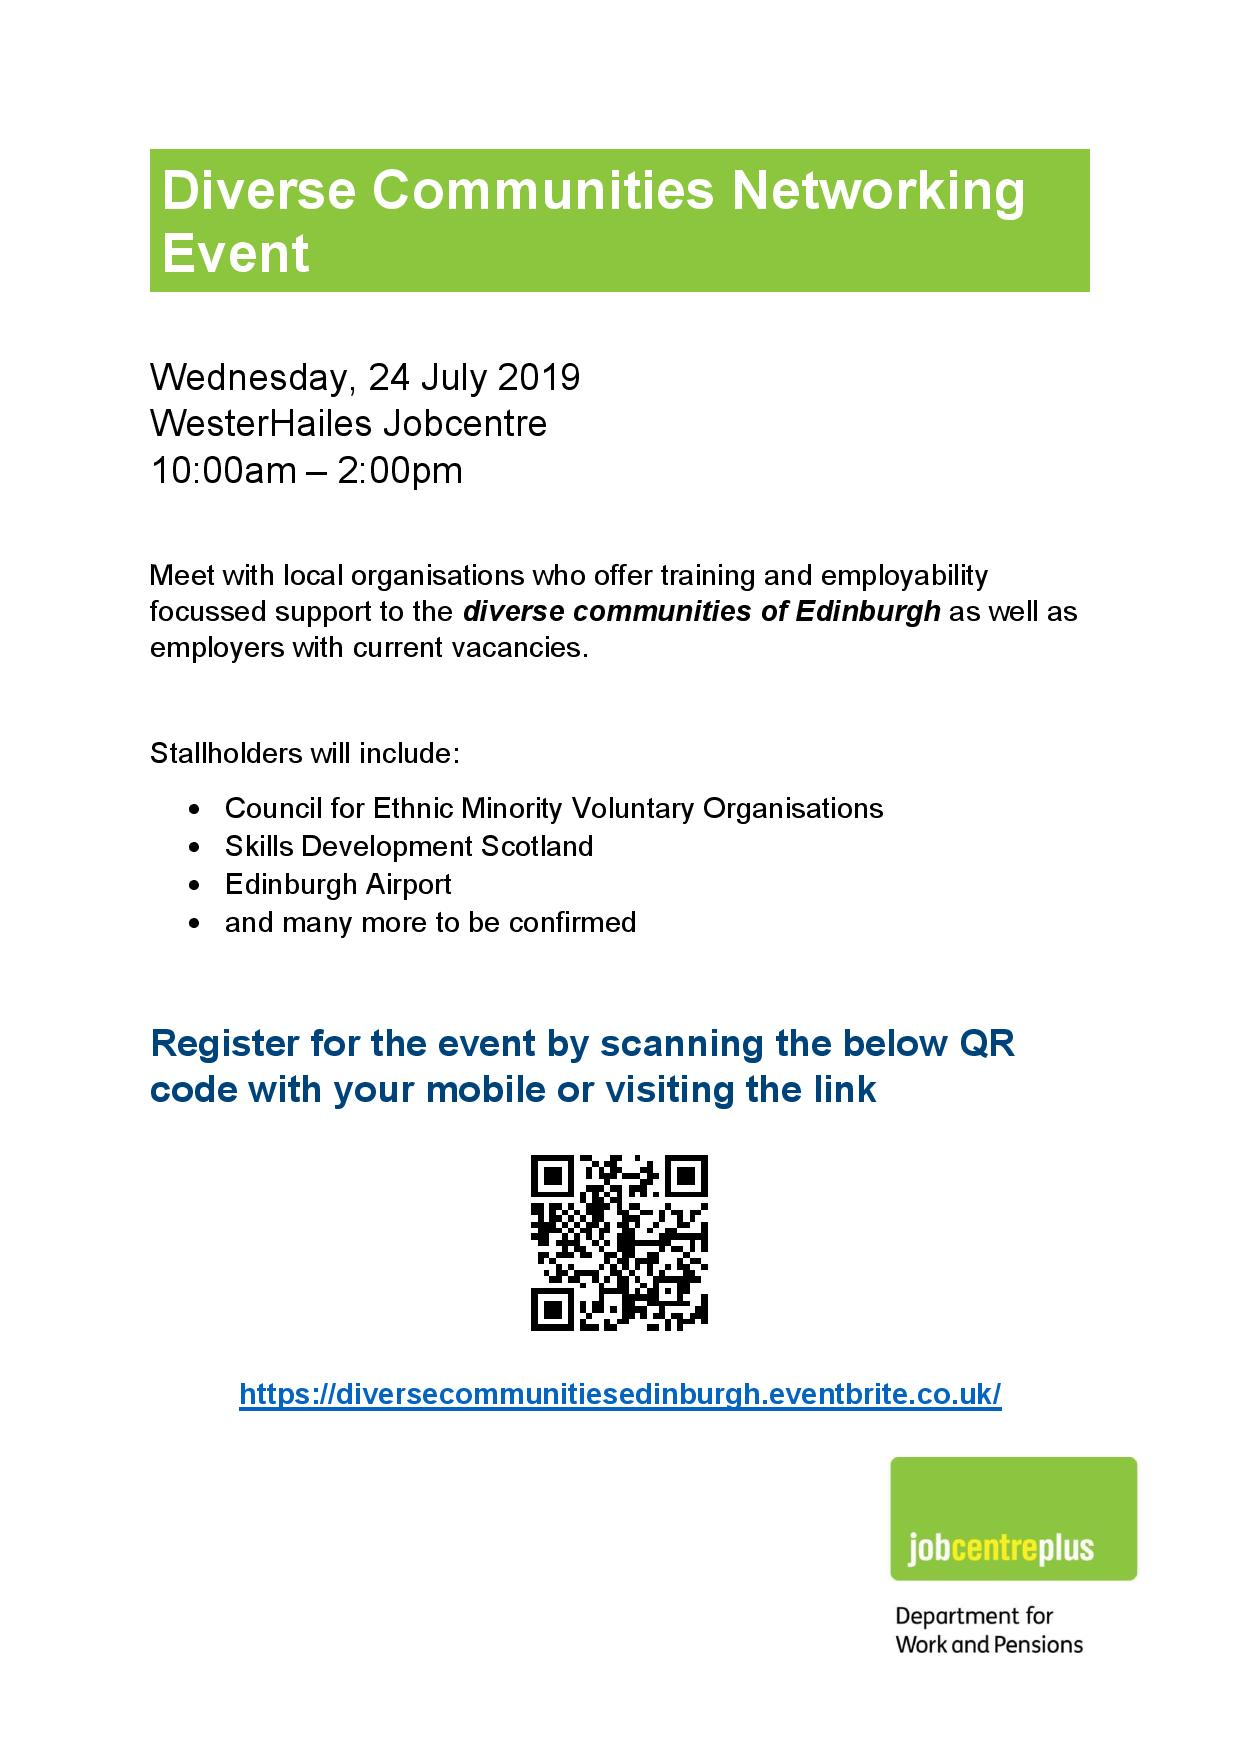 https://i0.wp.com/jobzone.edinburghcollege.ac.uk/wp-content/uploads/2019/07/Poster_Diverse-Communities-Networking-Event-page-001.jpg?fit=1240%2C1754&ssl=1